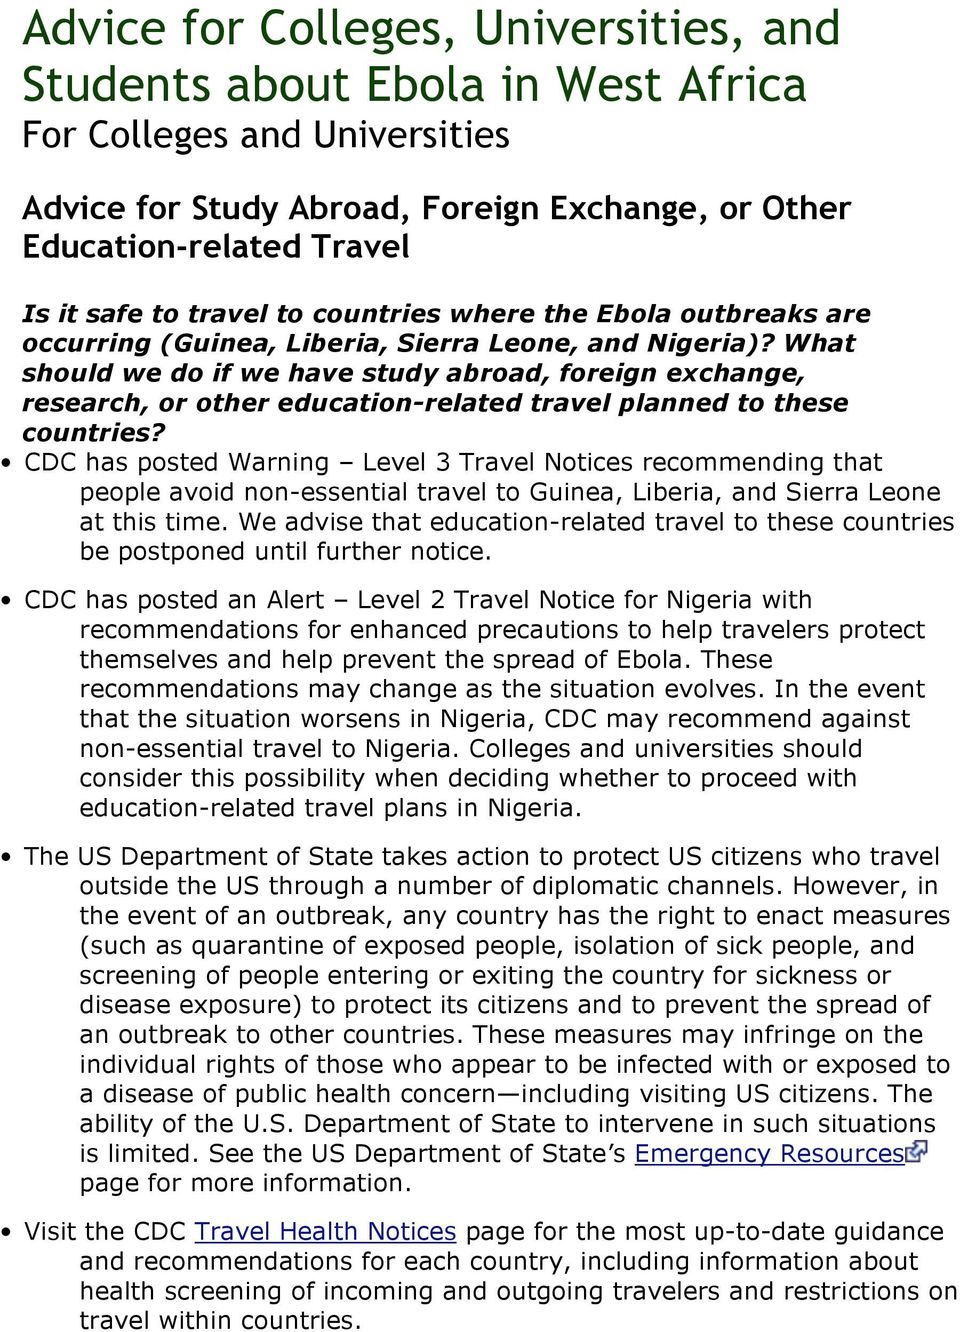 What should we do if we have study abroad, foreign exchange, research, or other education-related travel planned to these countries?